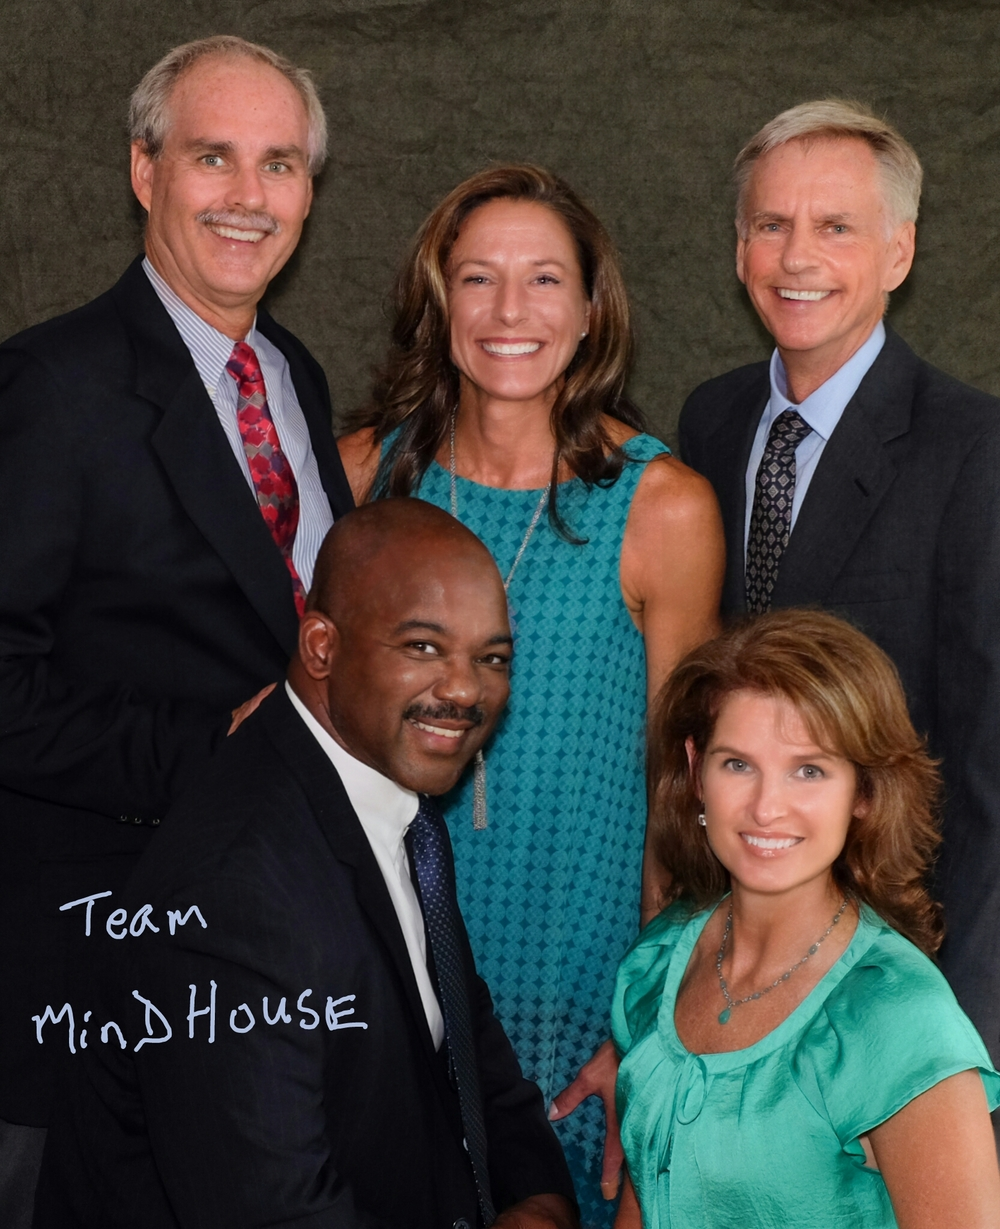 MinDHOUSE Group with writing.jpg